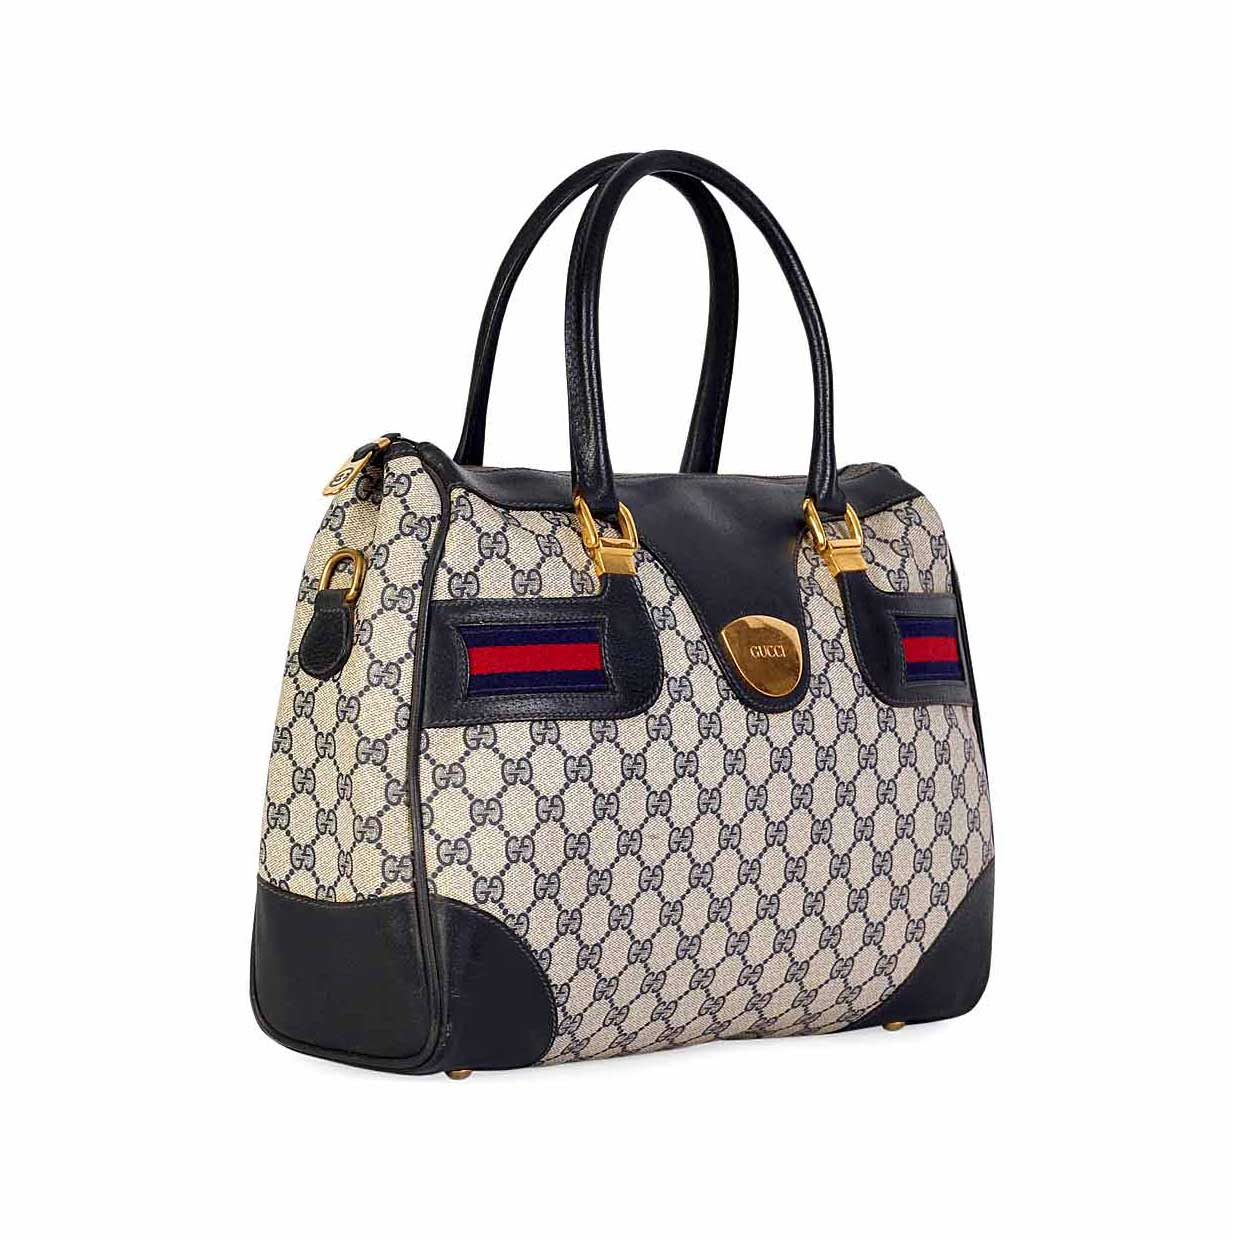 6c52dd5675042b Gucci Boston Bag Blue | Stanford Center for Opportunity Policy in ...